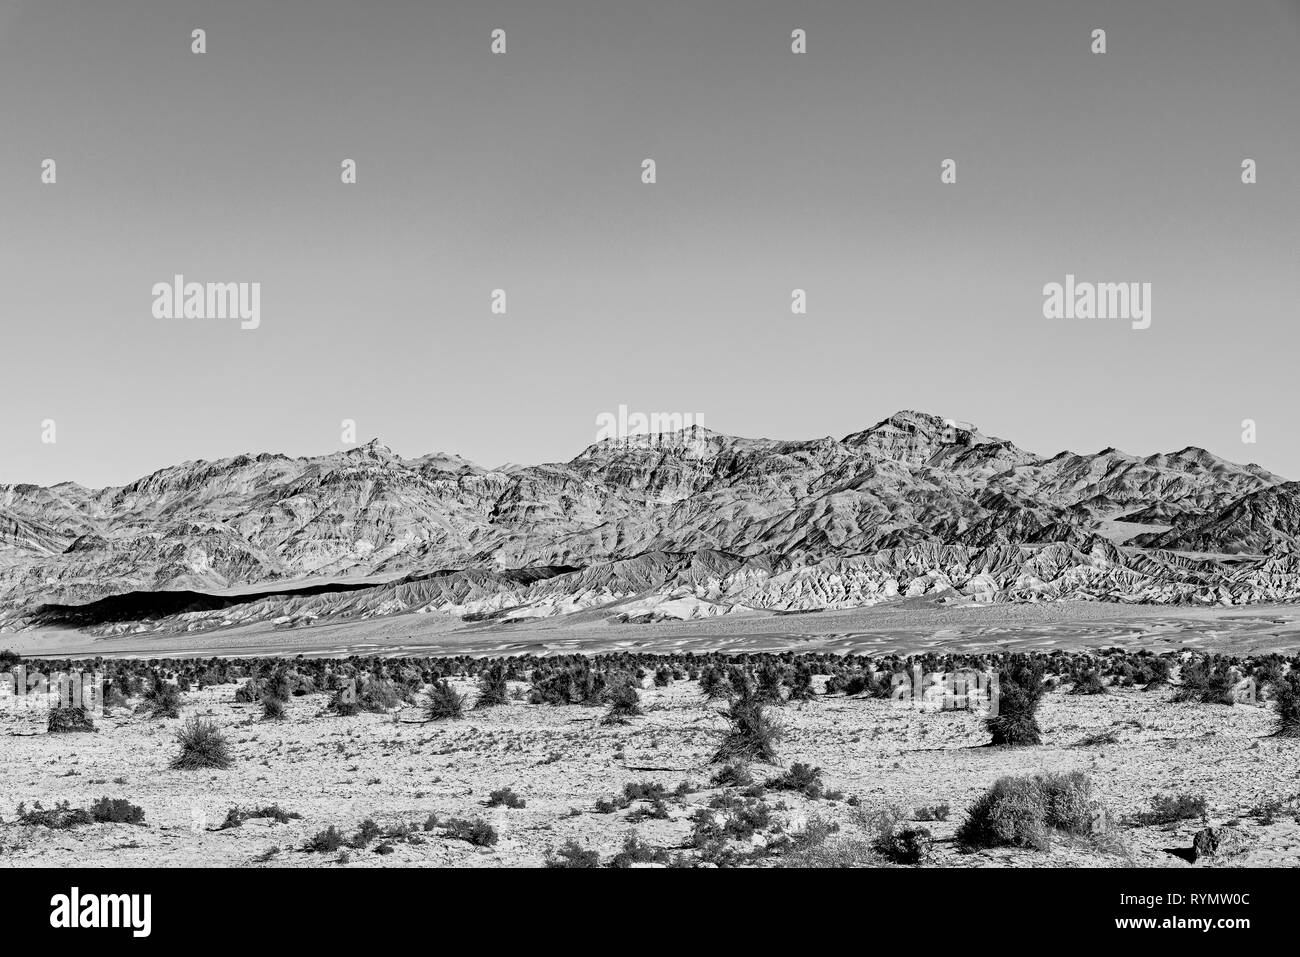 Black and white, Bushes growing in sandy desert valley with rocky barren mountains beyond. - Stock Image